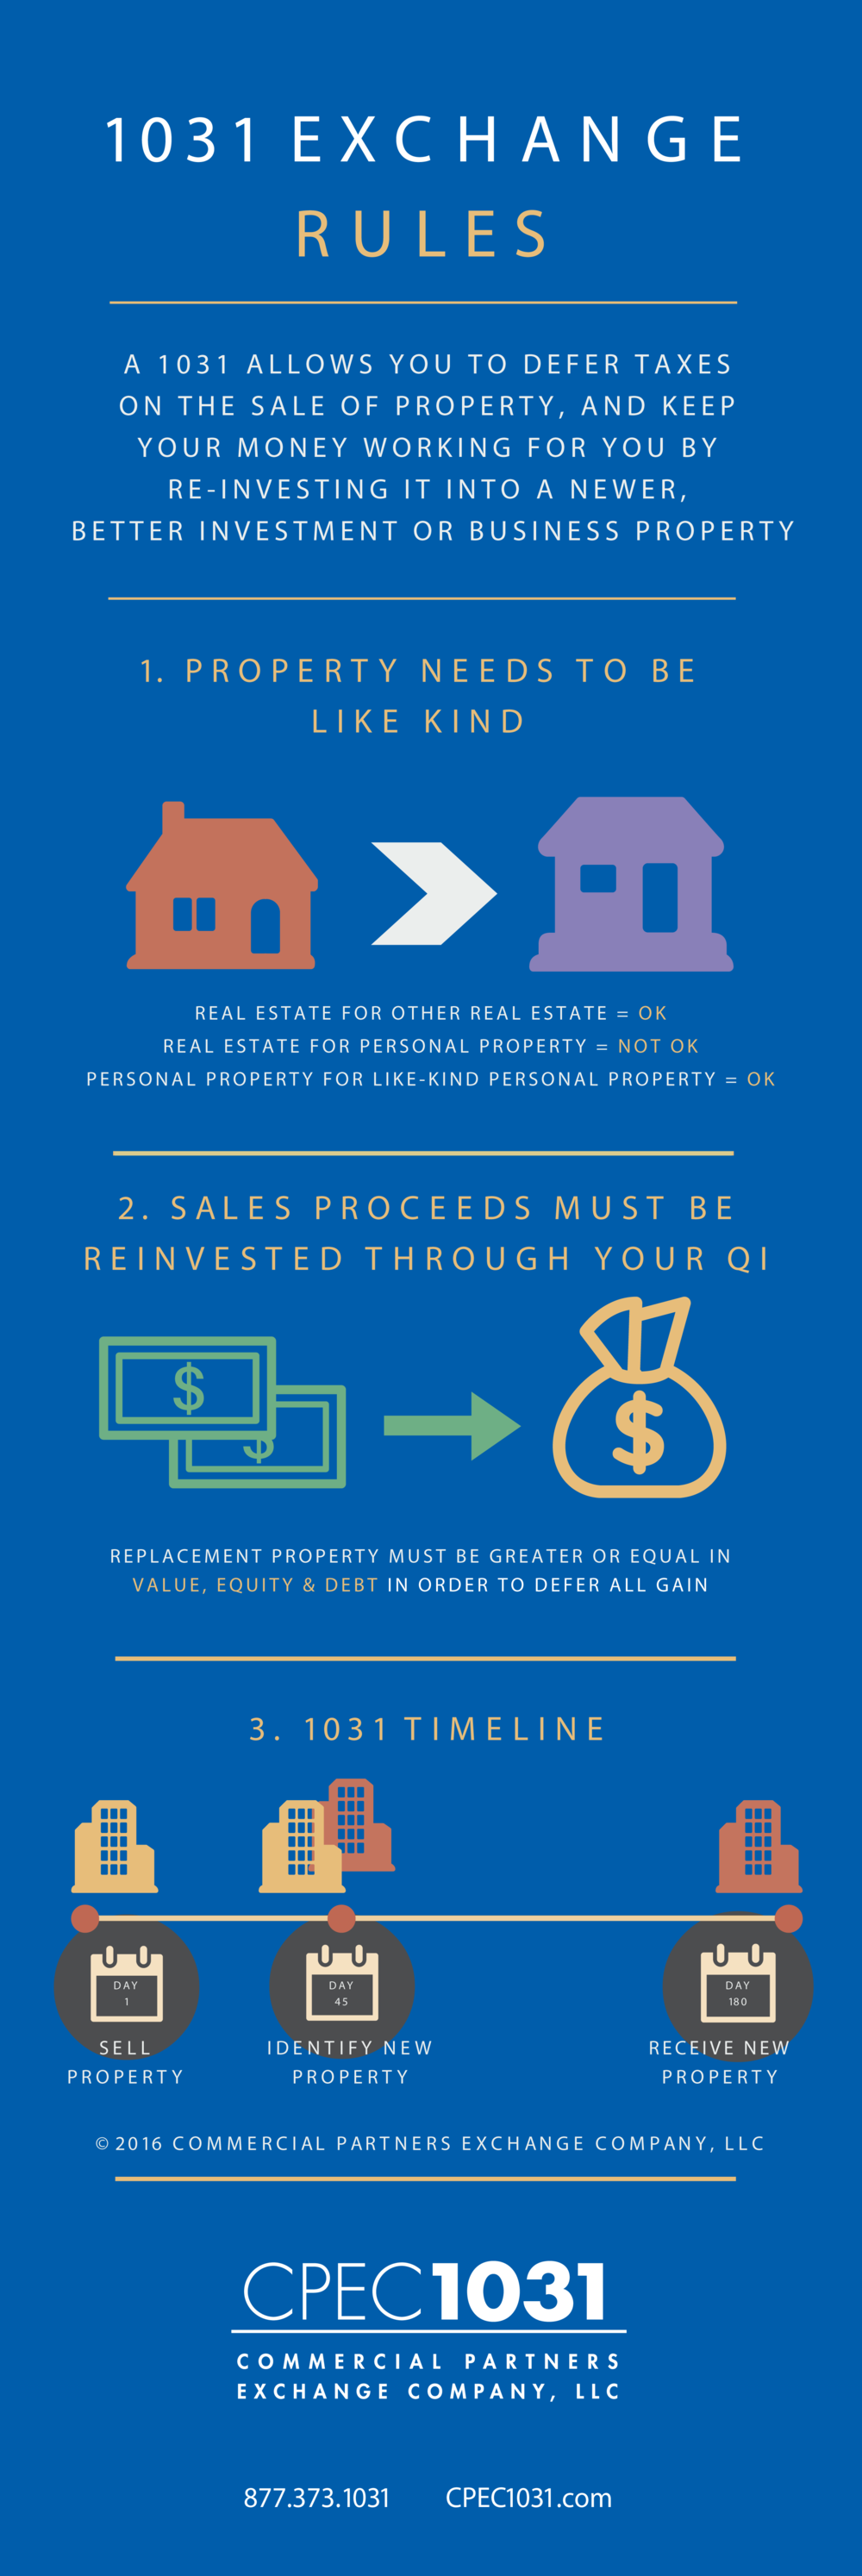 Minneapolis 1031 exchange rules infographic